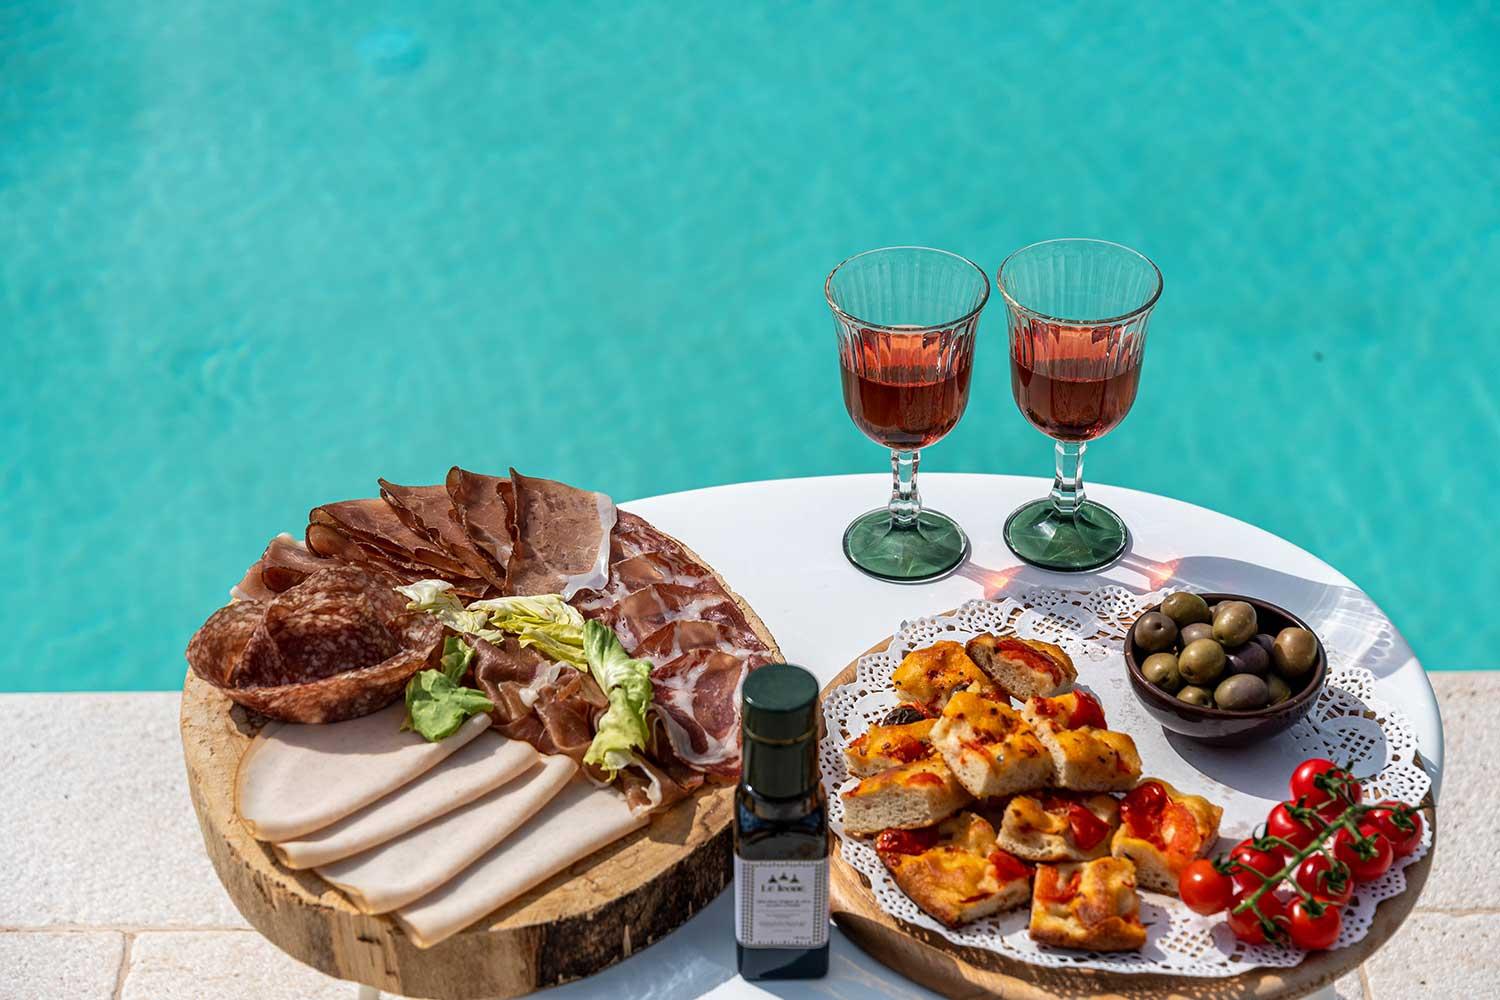 Aperitif amidst the Olive Trees